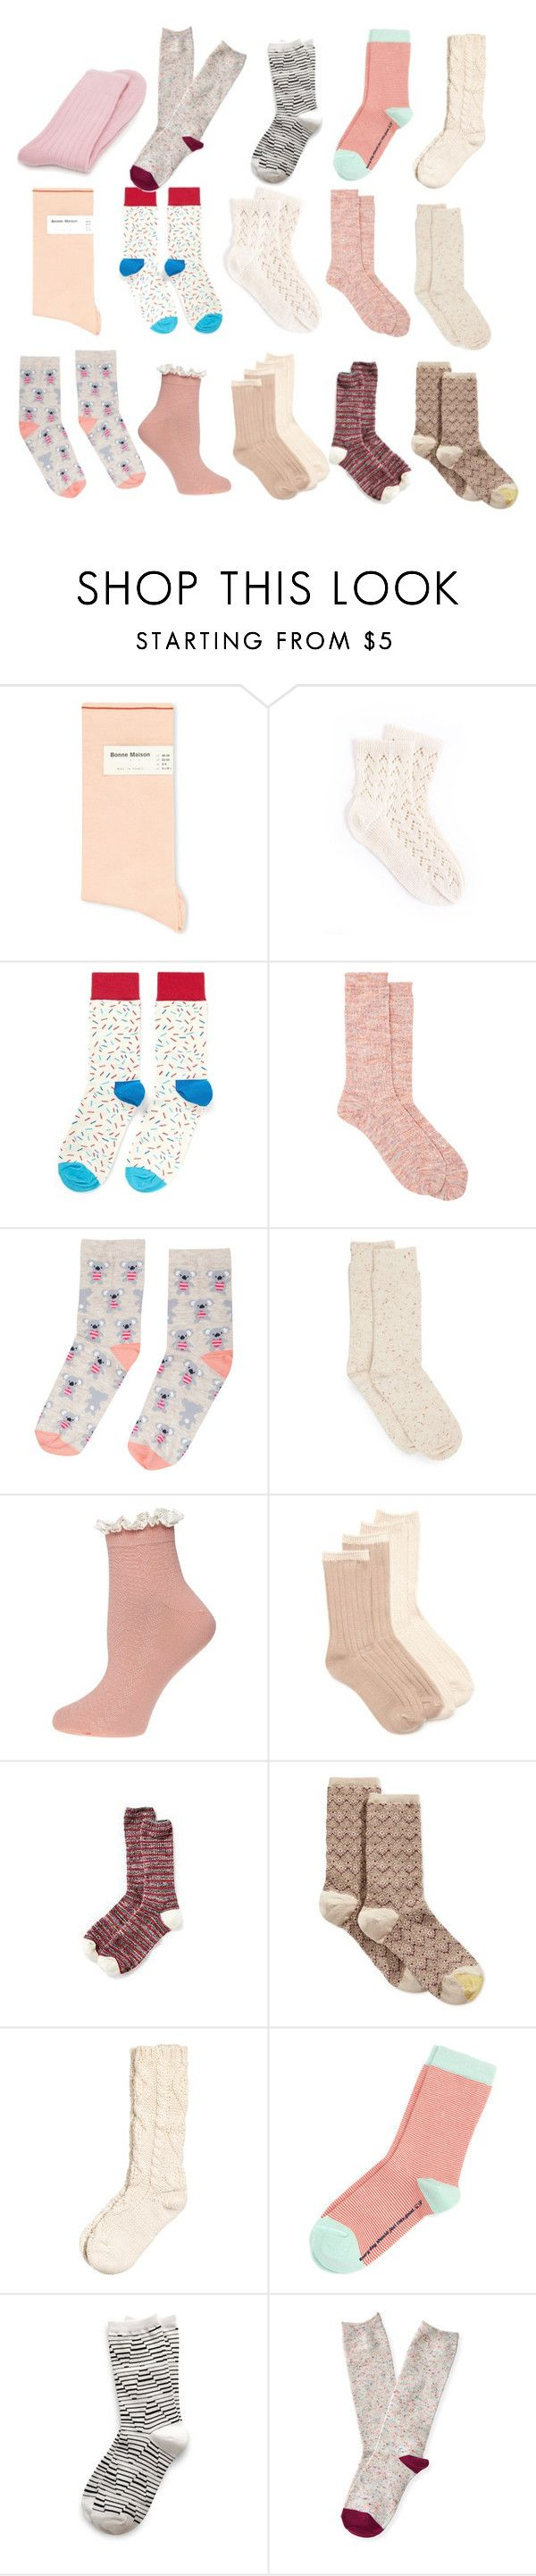 sock love by dodo85 on Polyvore featuring Antipast, Ted Baker, Bonne Maison, Aéropostale, Richer Poorer, Happy Socks, New Directions, Gold Toe, H&M and Accessorize